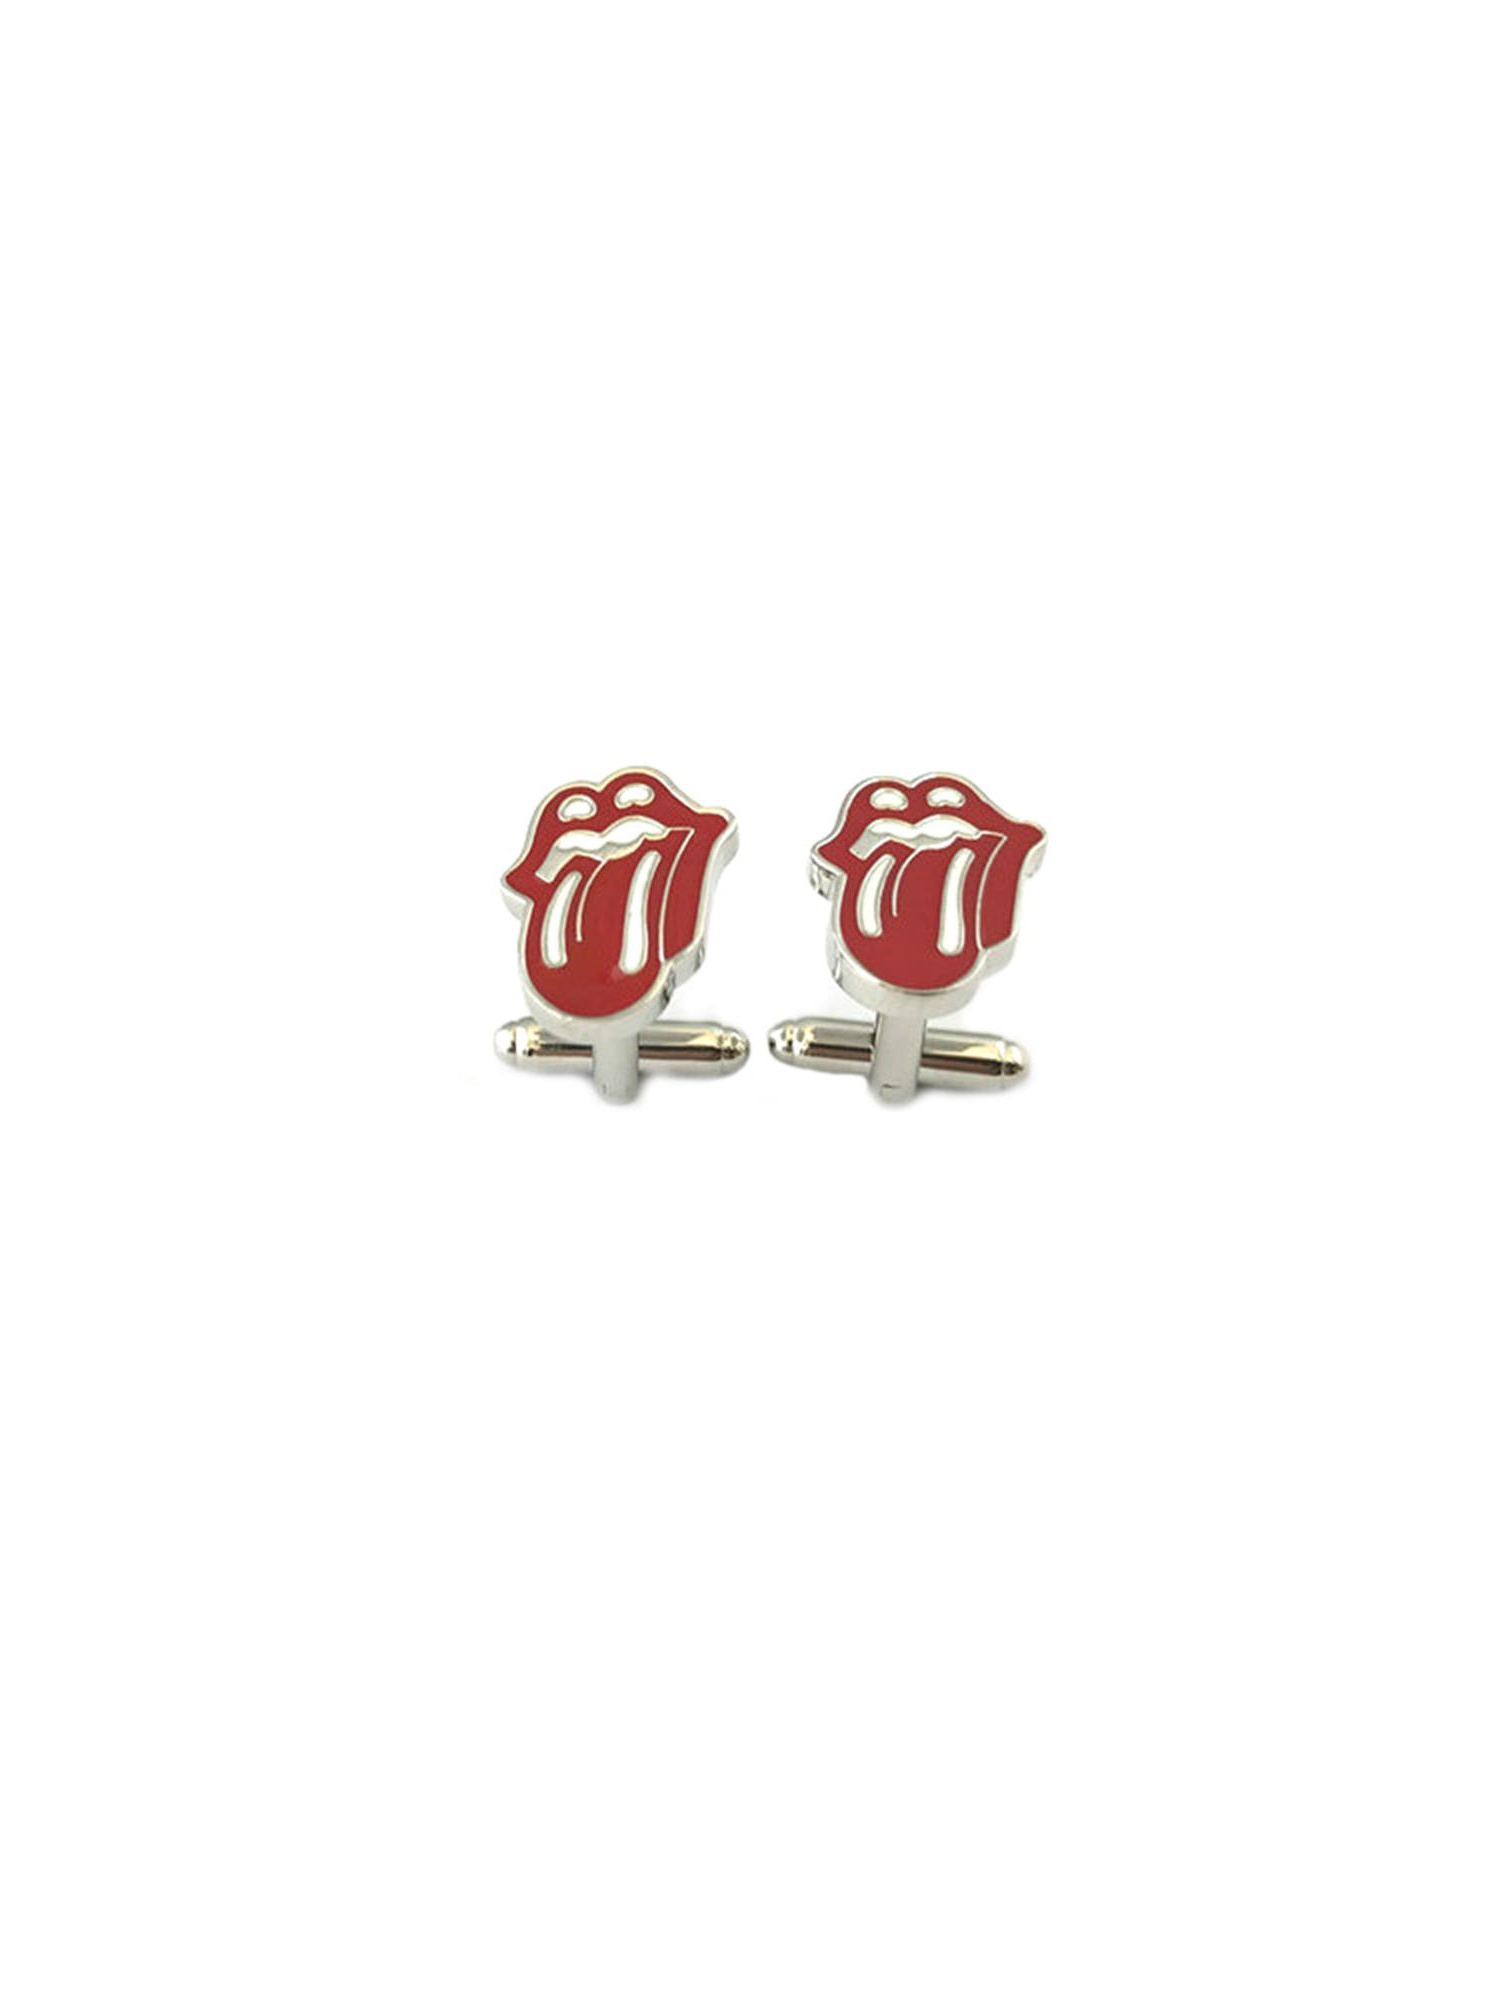 Rolling Stones Tongue Men's Groomsmen Cuff Links w/Gift Box by Superheroes